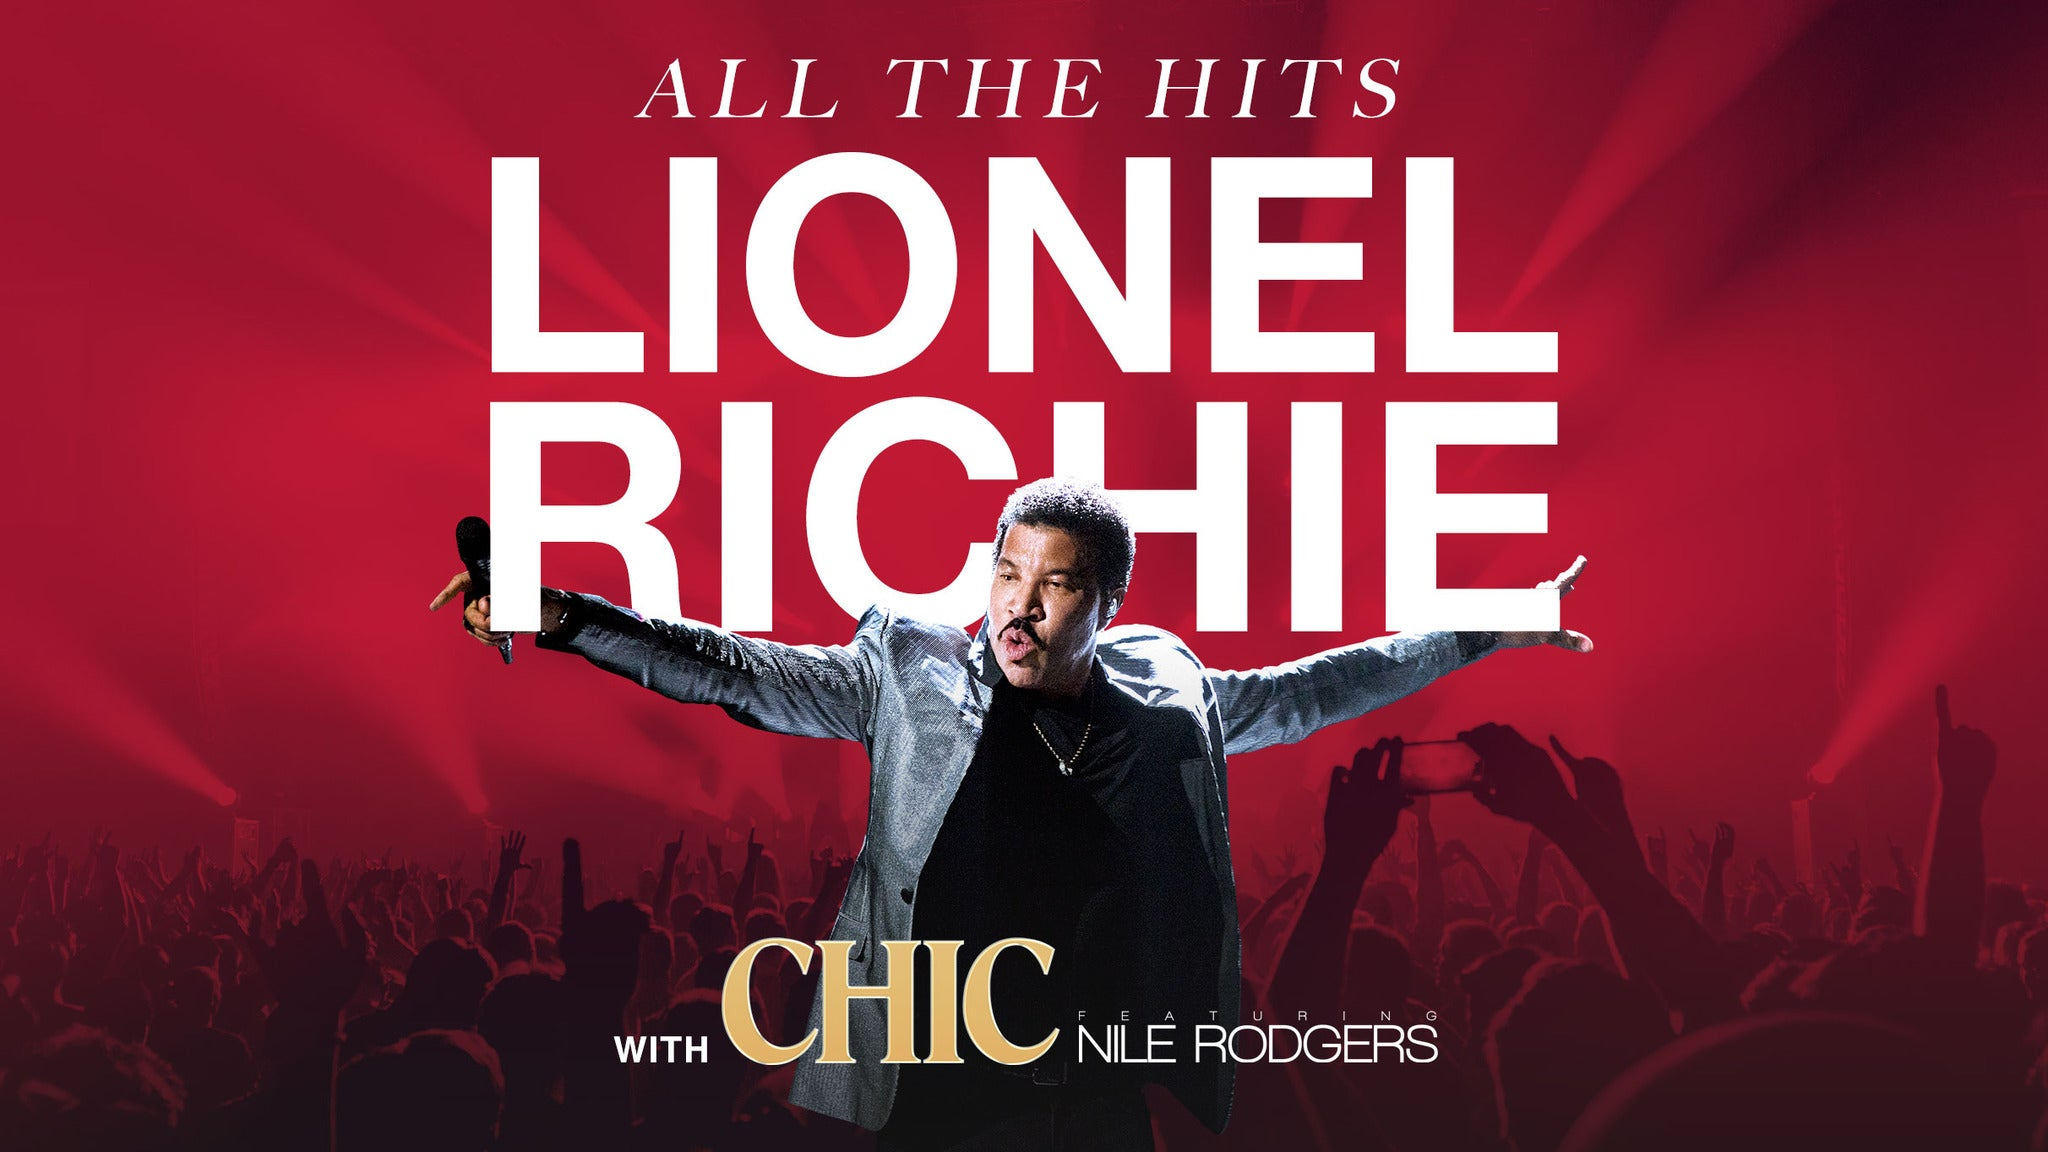 Lionel Richie at Neal S Blaisdell Arena